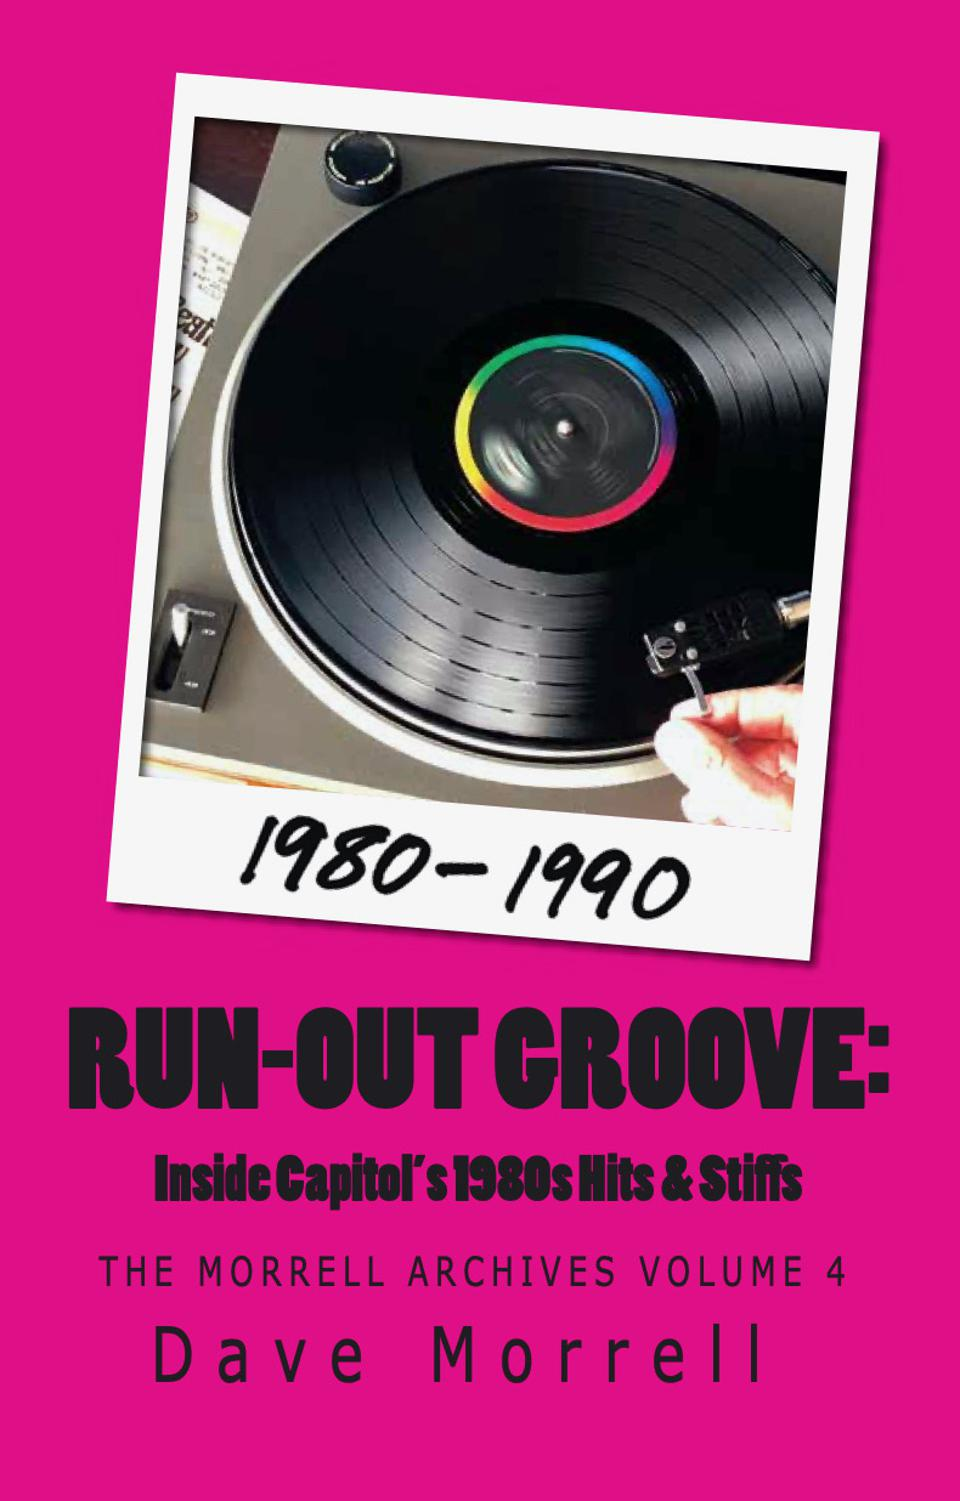 Cover of 'Run-Out Groove' by Dave Morrell.